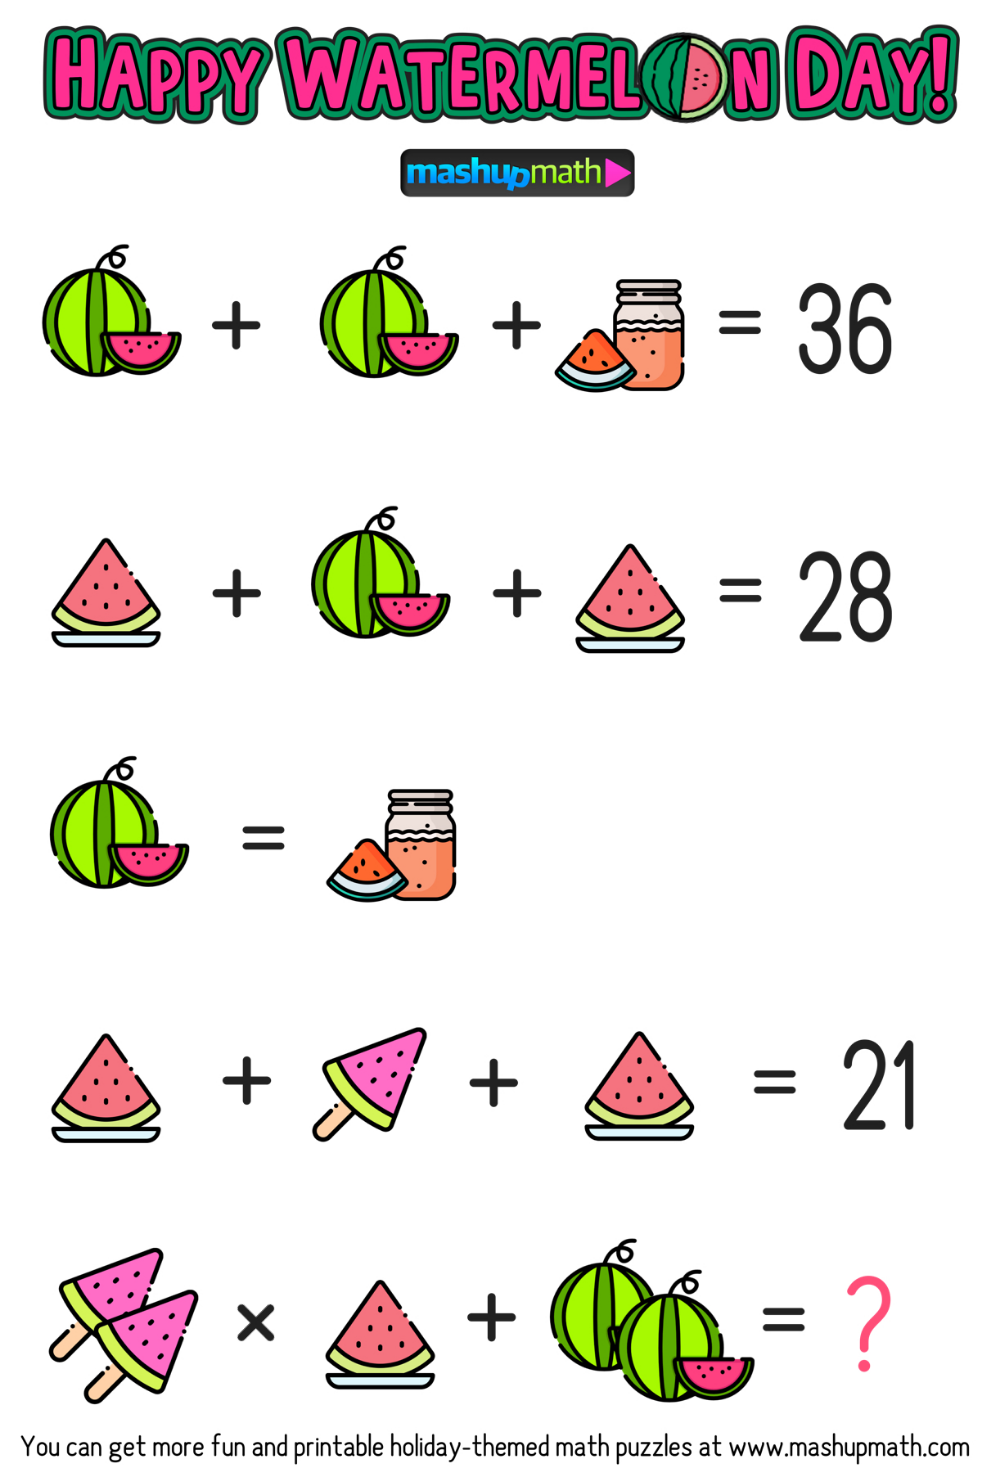 Pin By Louise Price On Classroom Ideas Maths Puzzles Picture Puzzles Brain Teasers 5th Grade Math [ 1477 x 1000 Pixel ]